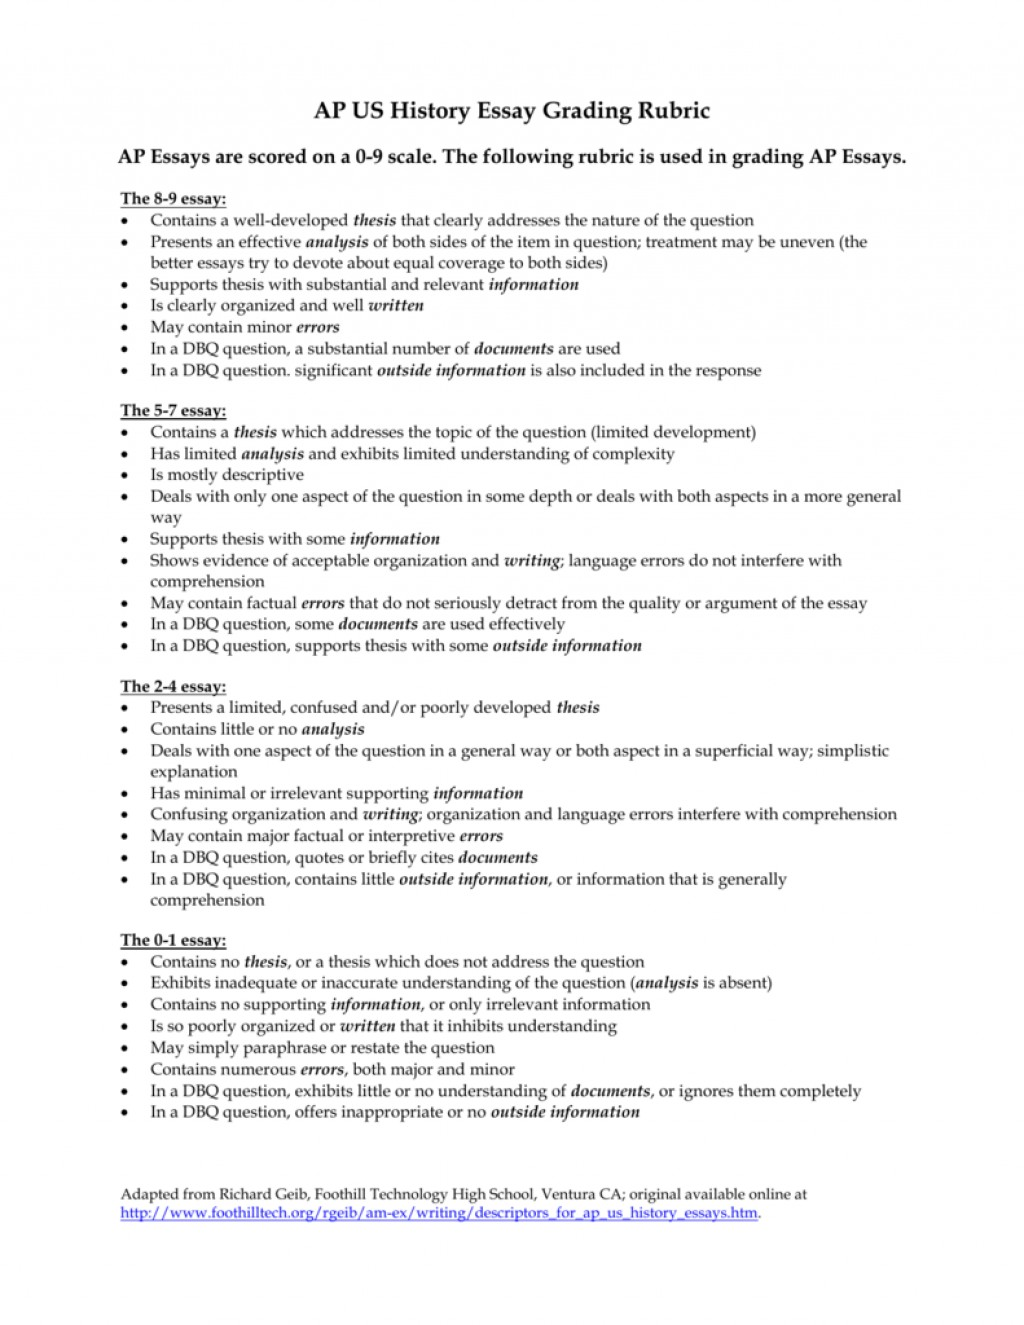 003 008030025 1 Essay Example Apush Fantastic Rubric Short Answer 2017 Causation Ap Us History Questions Large